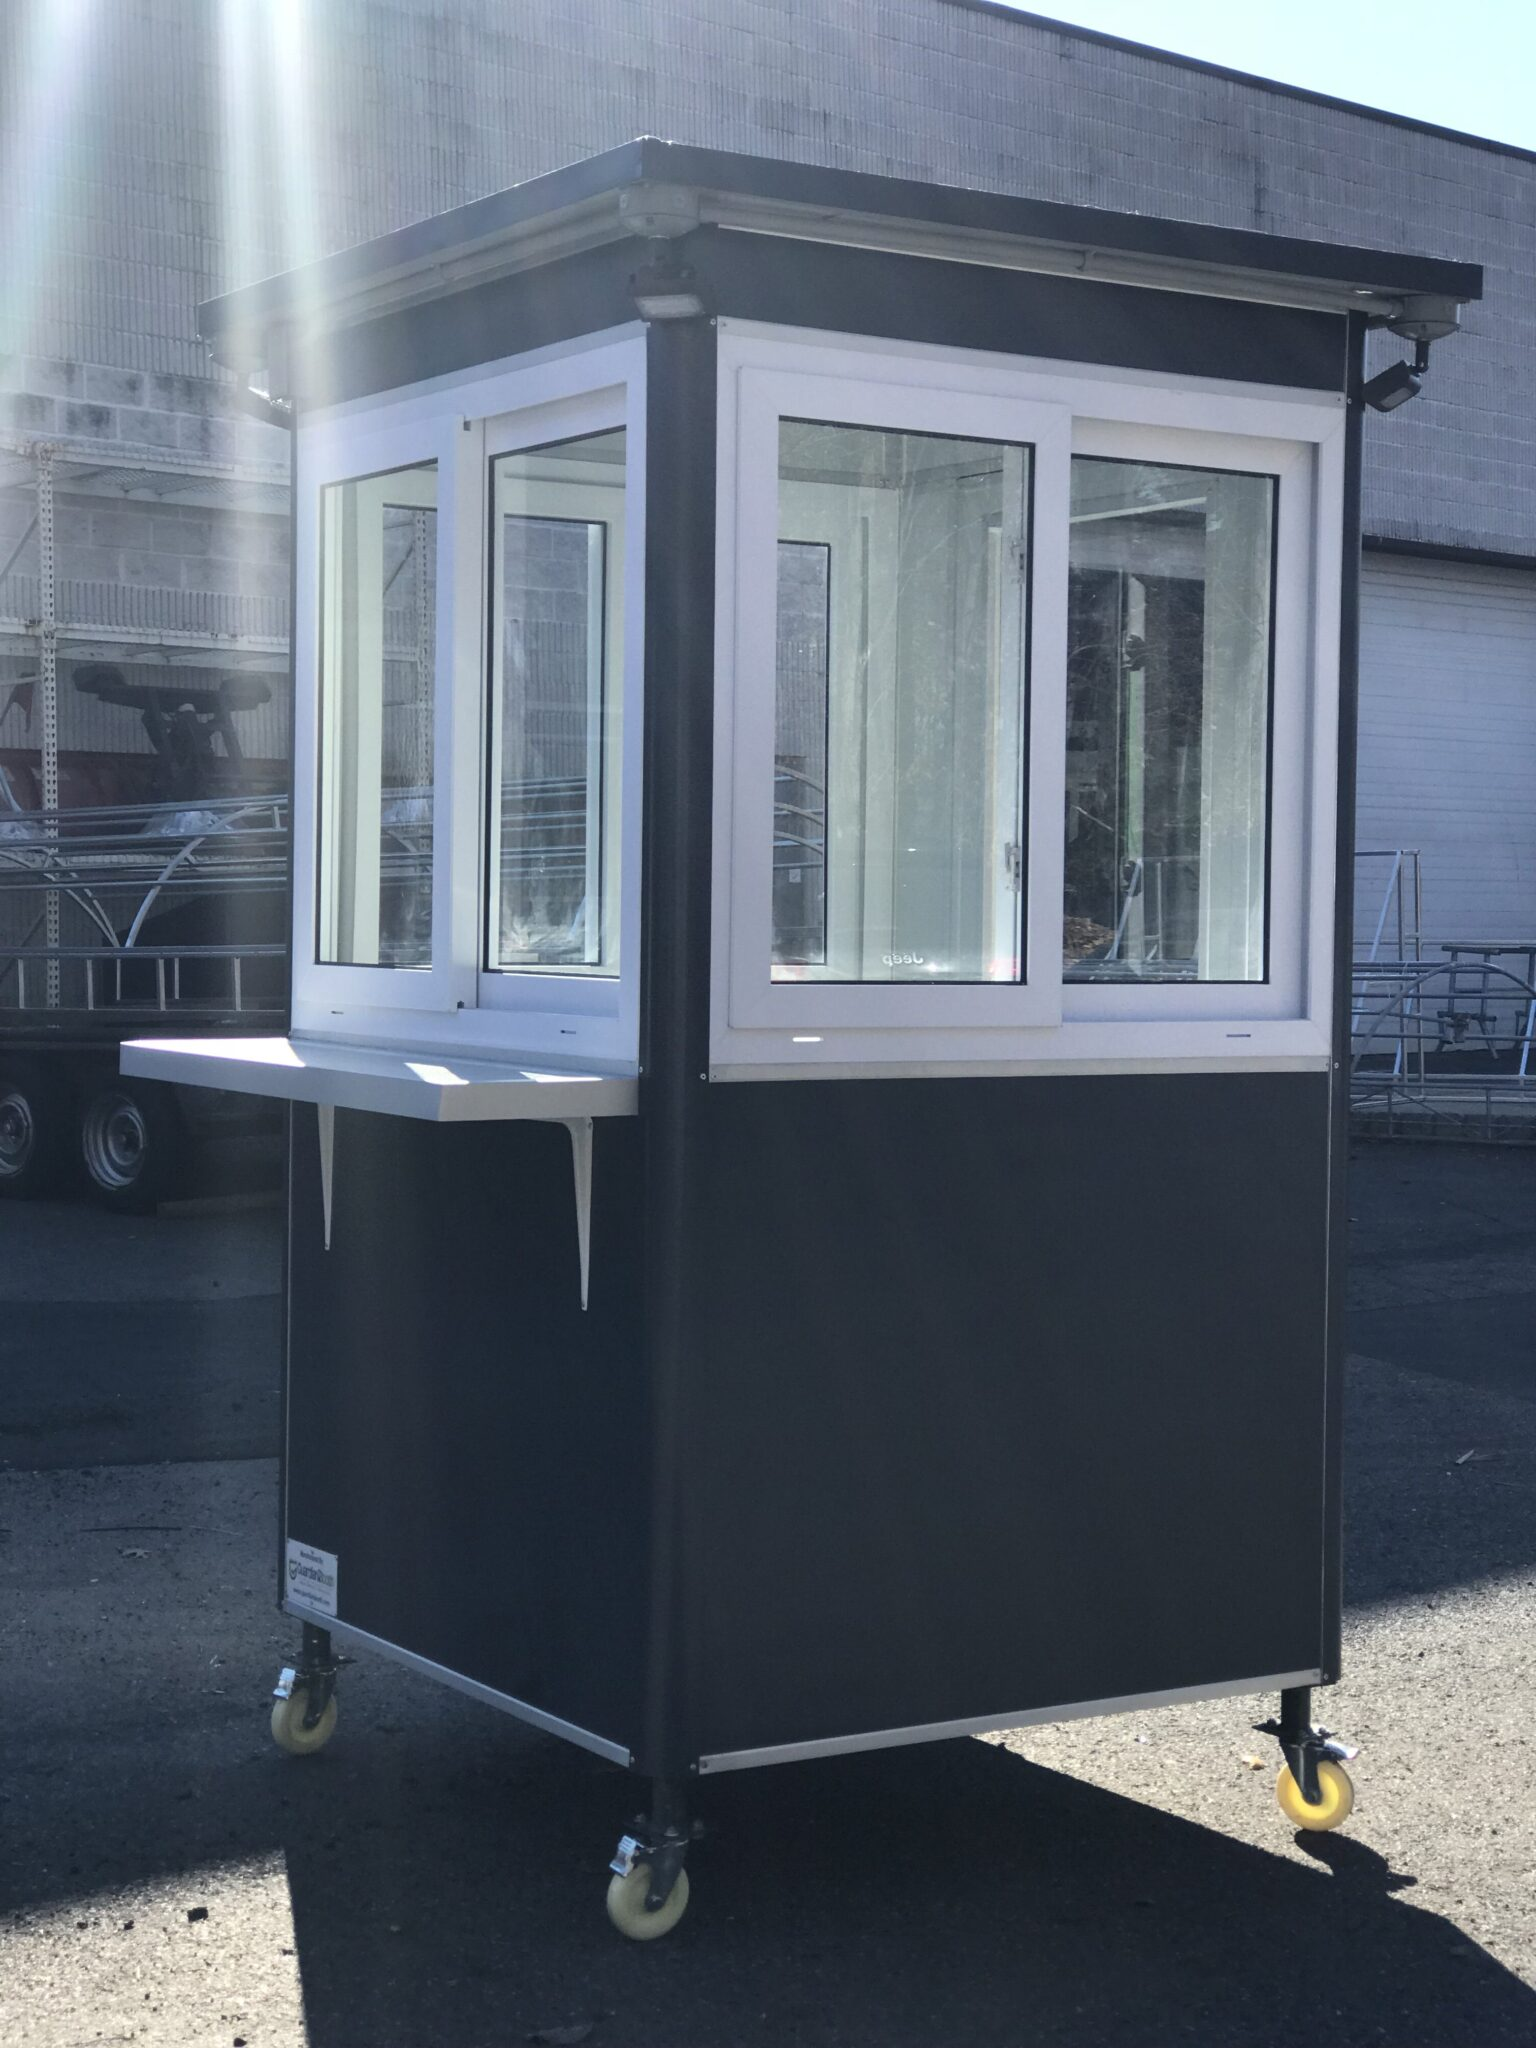 4x4 Ticket Booth in Carlsbad, CA with Caster Wheels, Exterior Counter, and Outside Spotlights